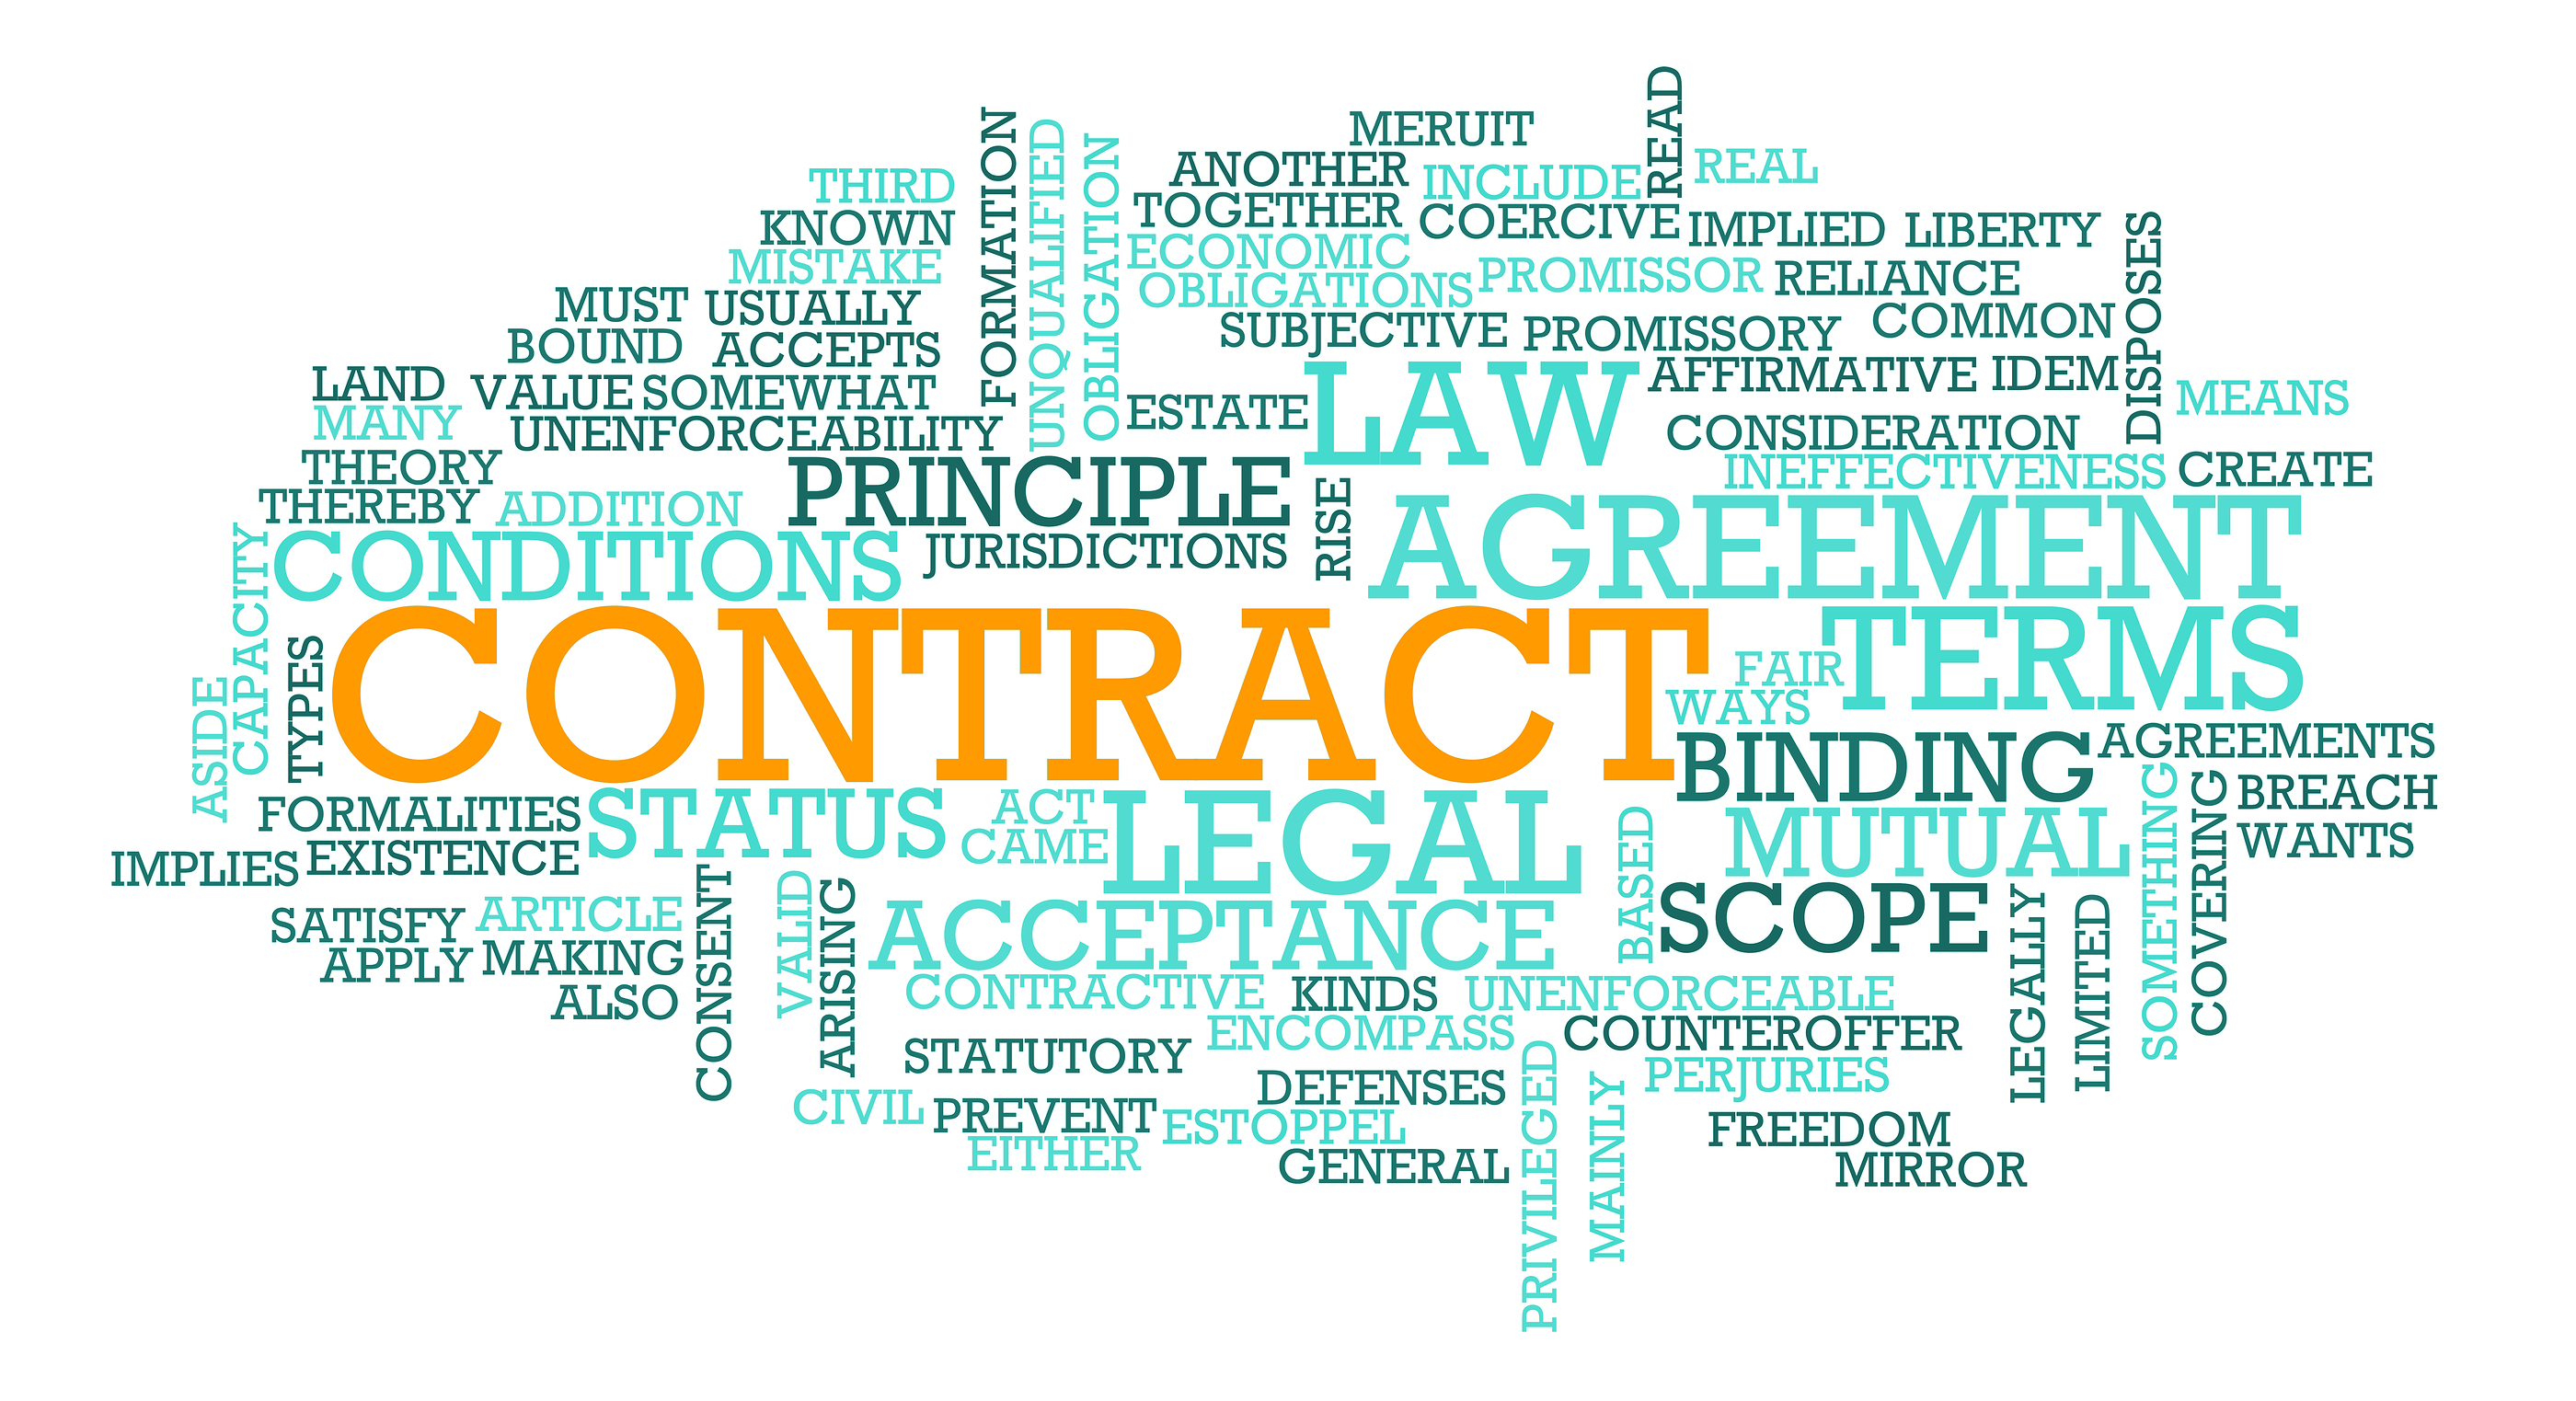 Contract For Business Law On Terms Of Agreement Touchpoint Legal - Legal agreement